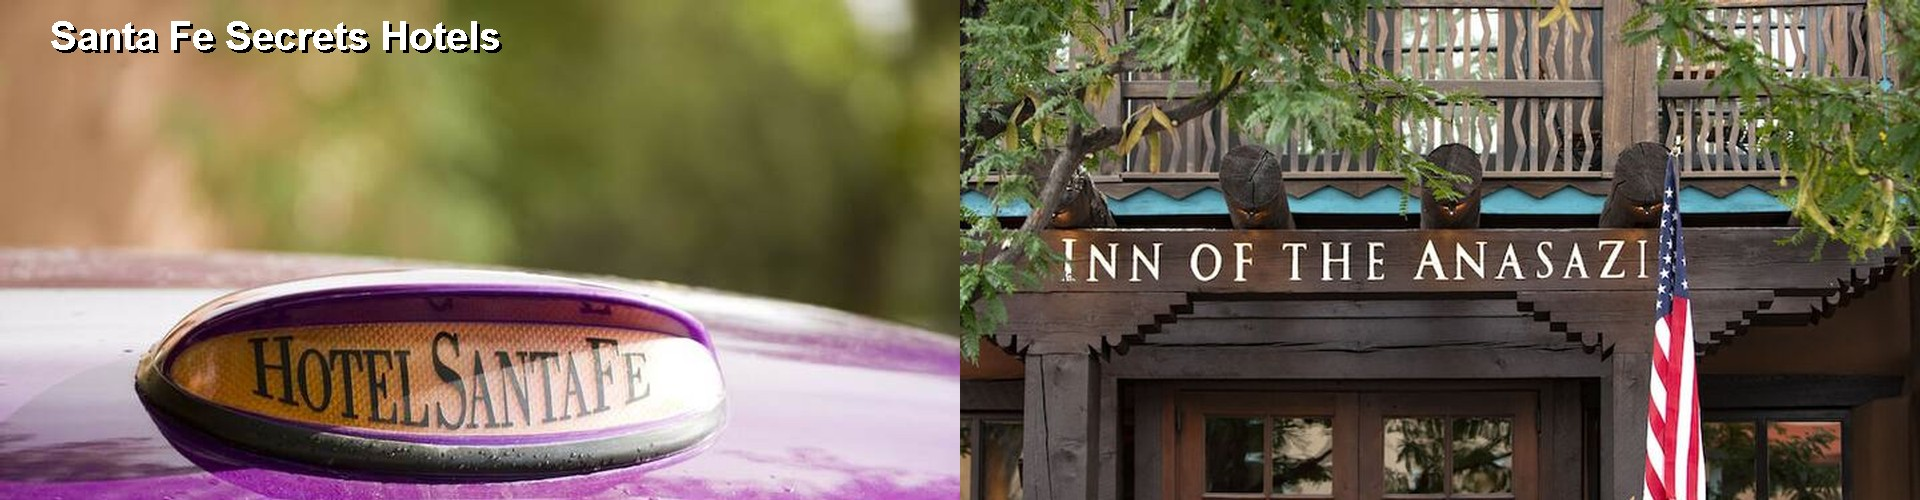 5 Best Hotels near Santa Fe Secrets